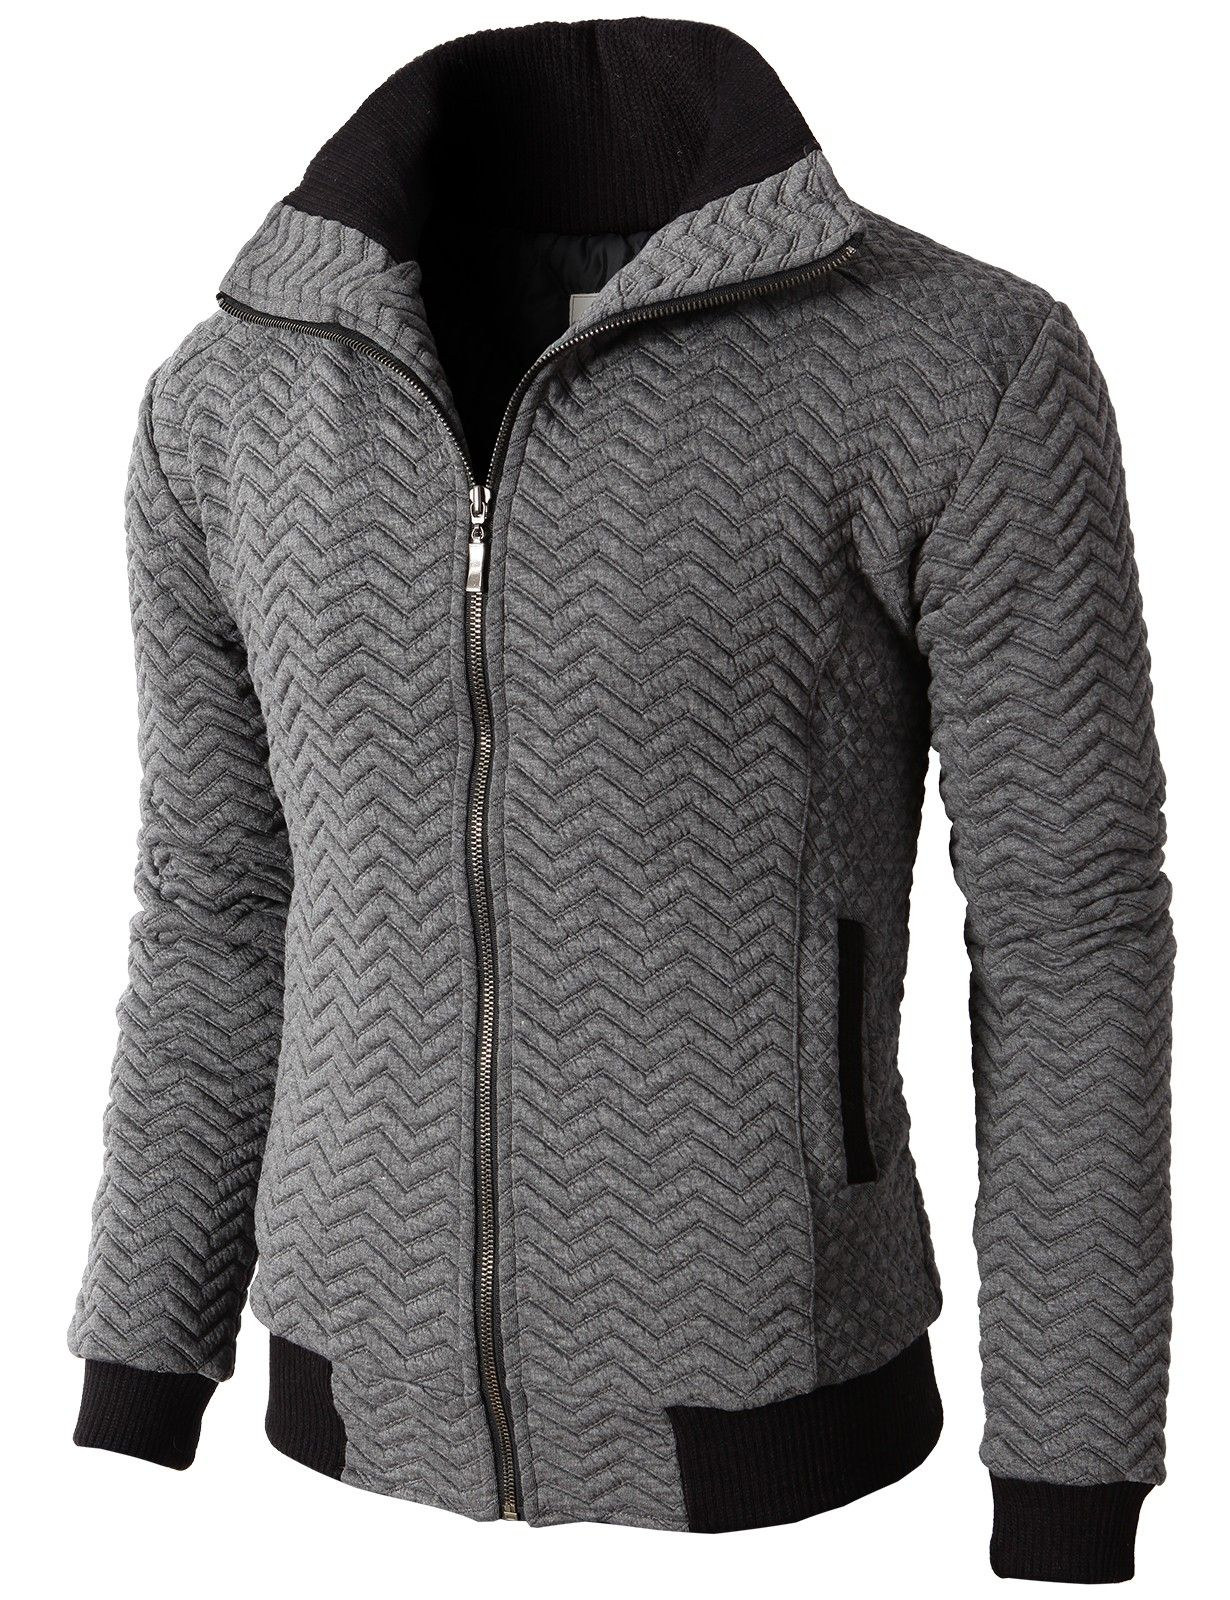 Doublju Mens Casual High Neck Zip Up Jumper With Zigzag Quilting ...